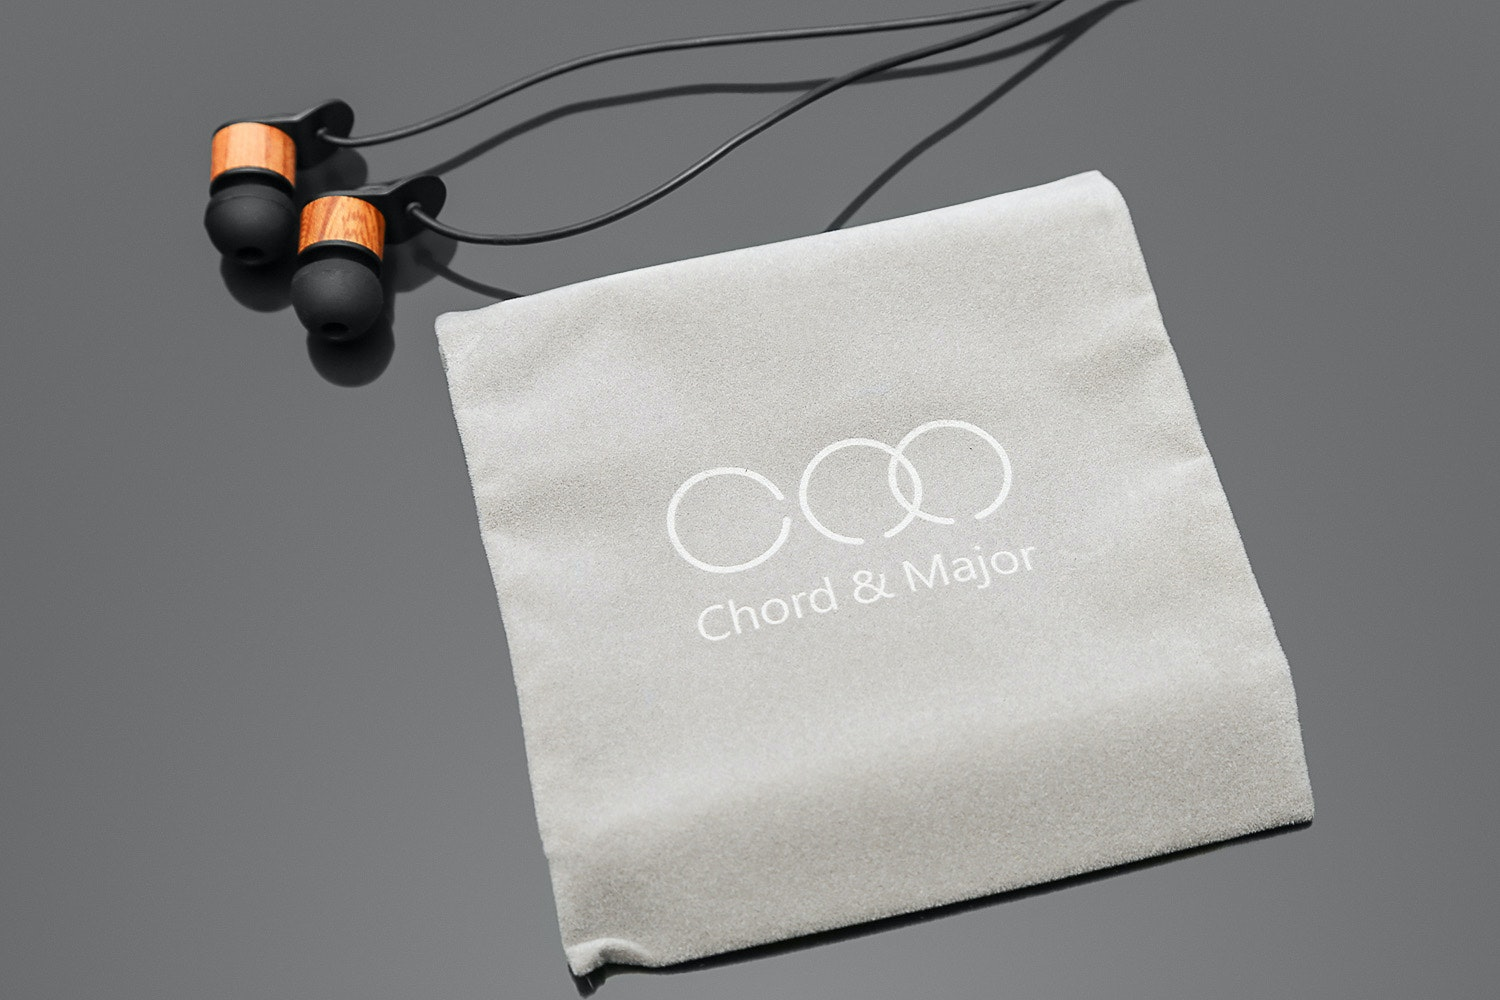 Chord & Major Earphones